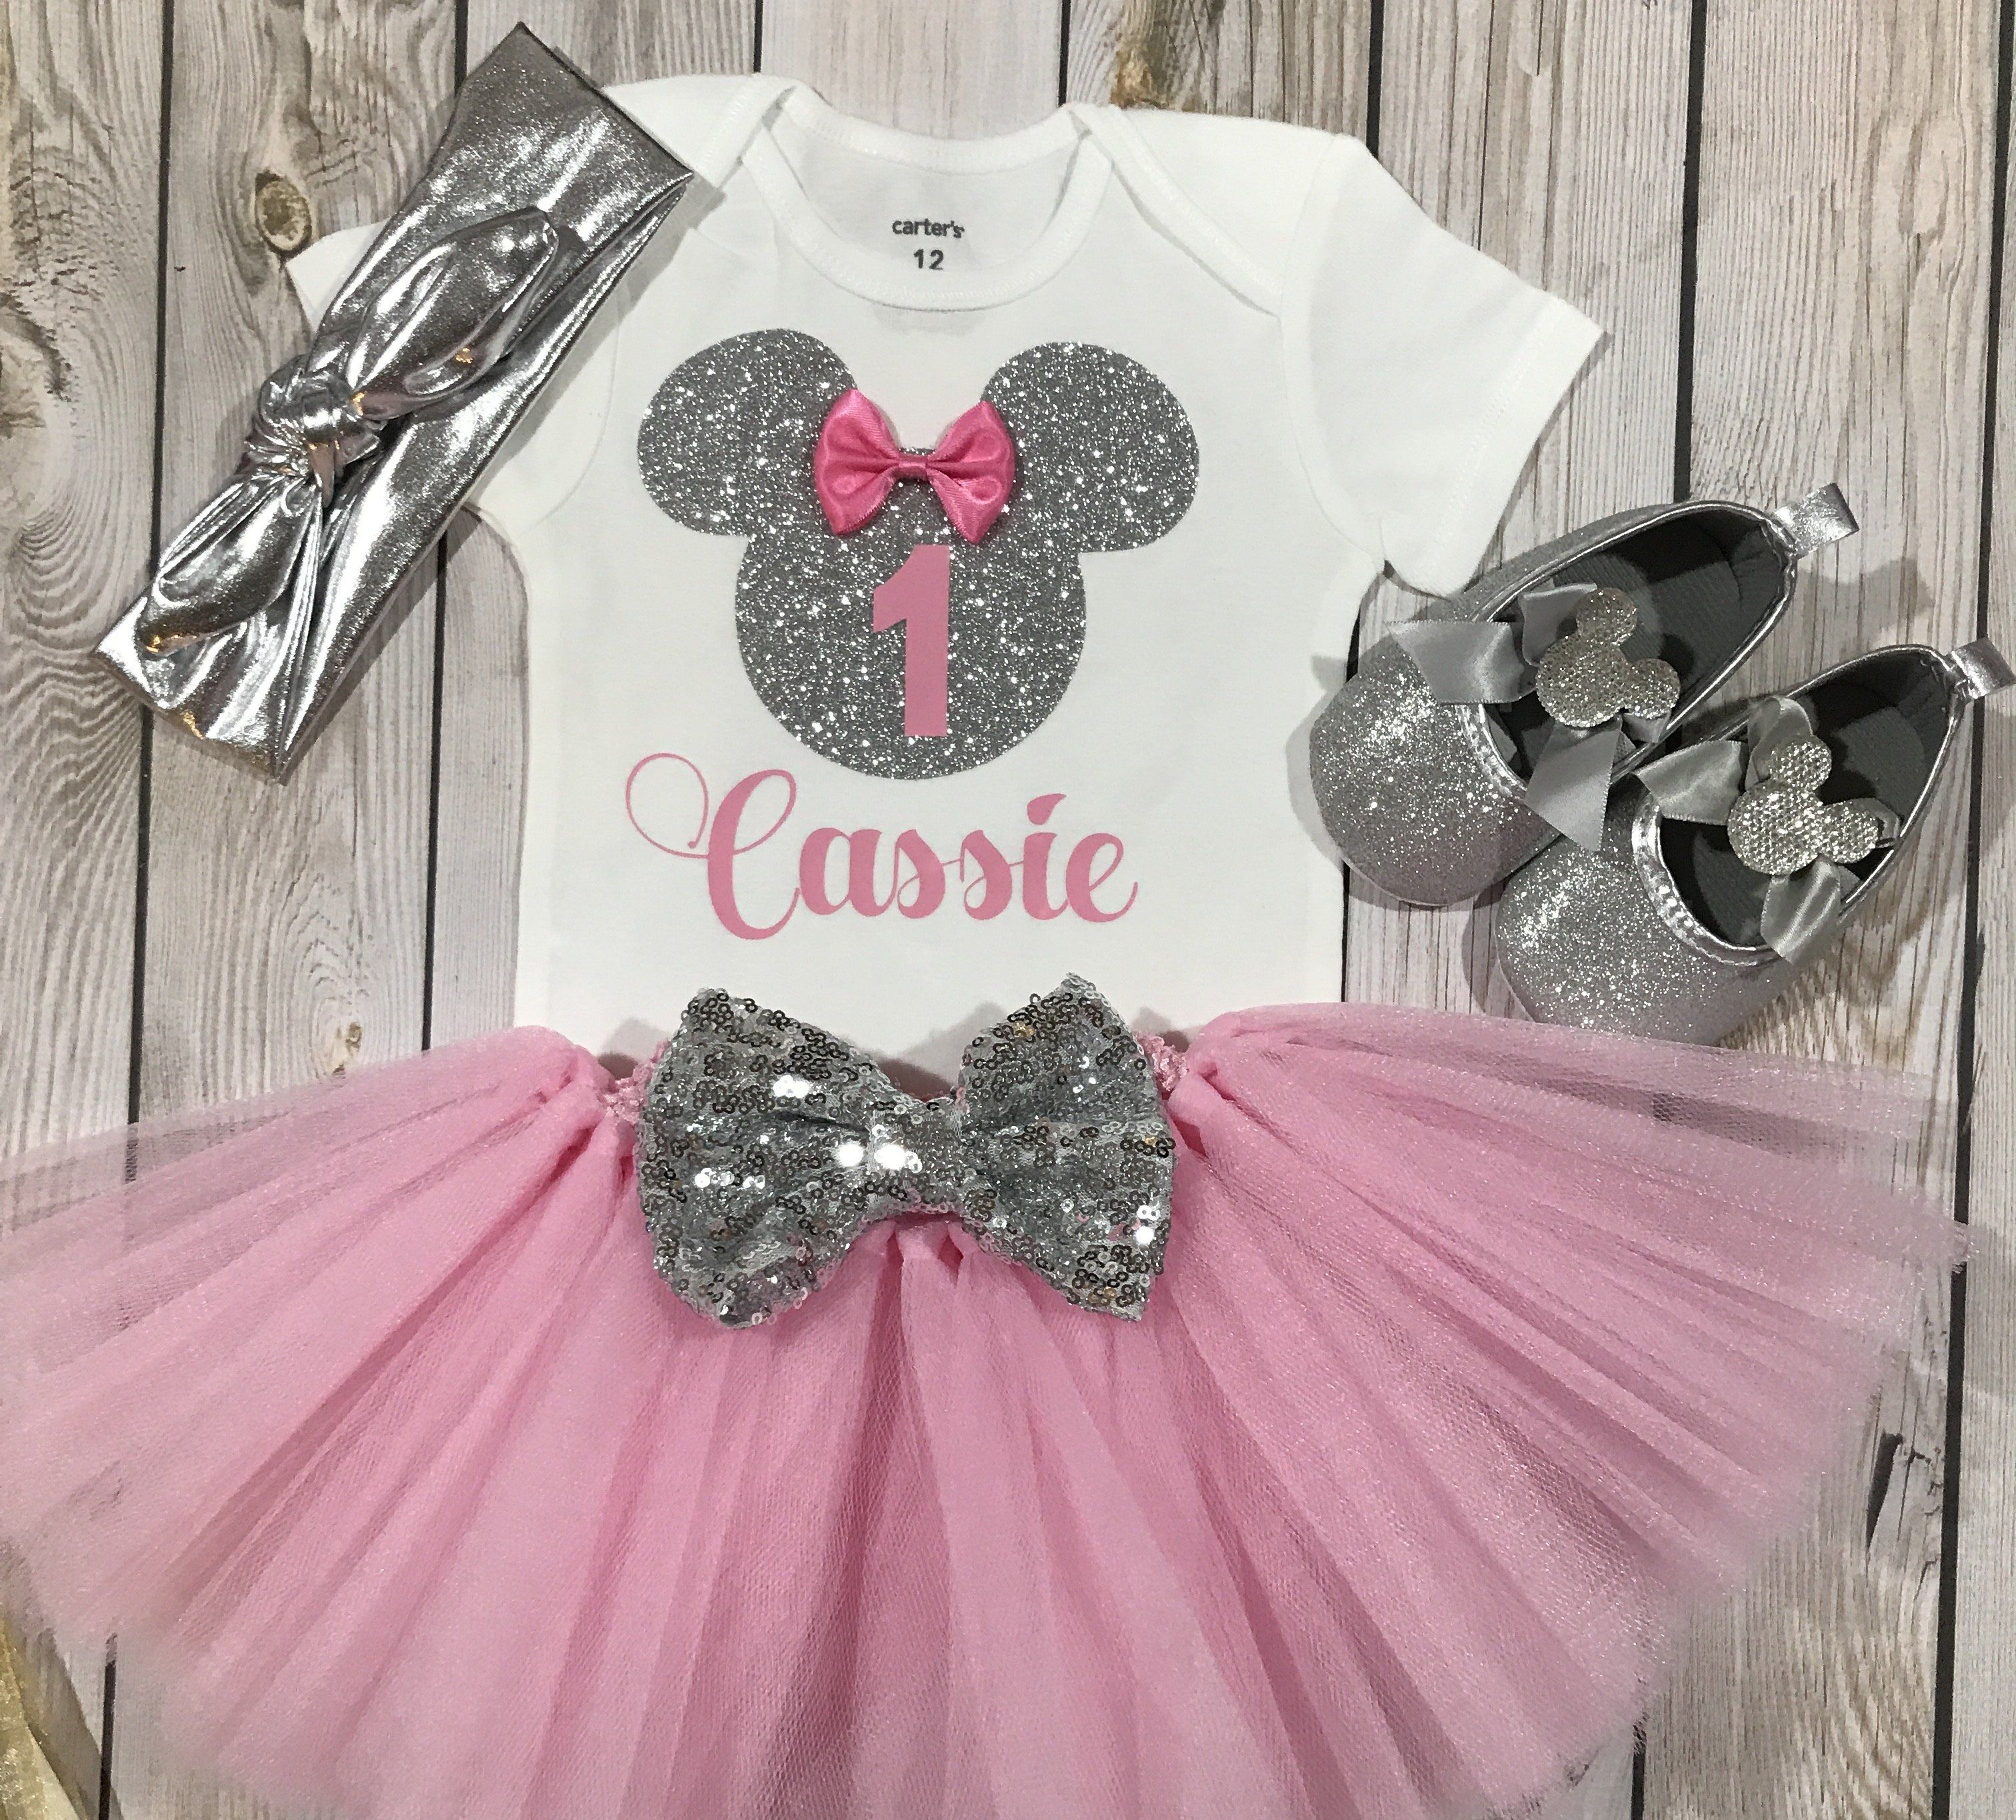 6ada939f2 First birthday outfit girl pink and silver, minnie mouse shoes, Minnie  Mouse birthday outfit, Minnie Mouse first birthday outfit, minnie mouse  headband